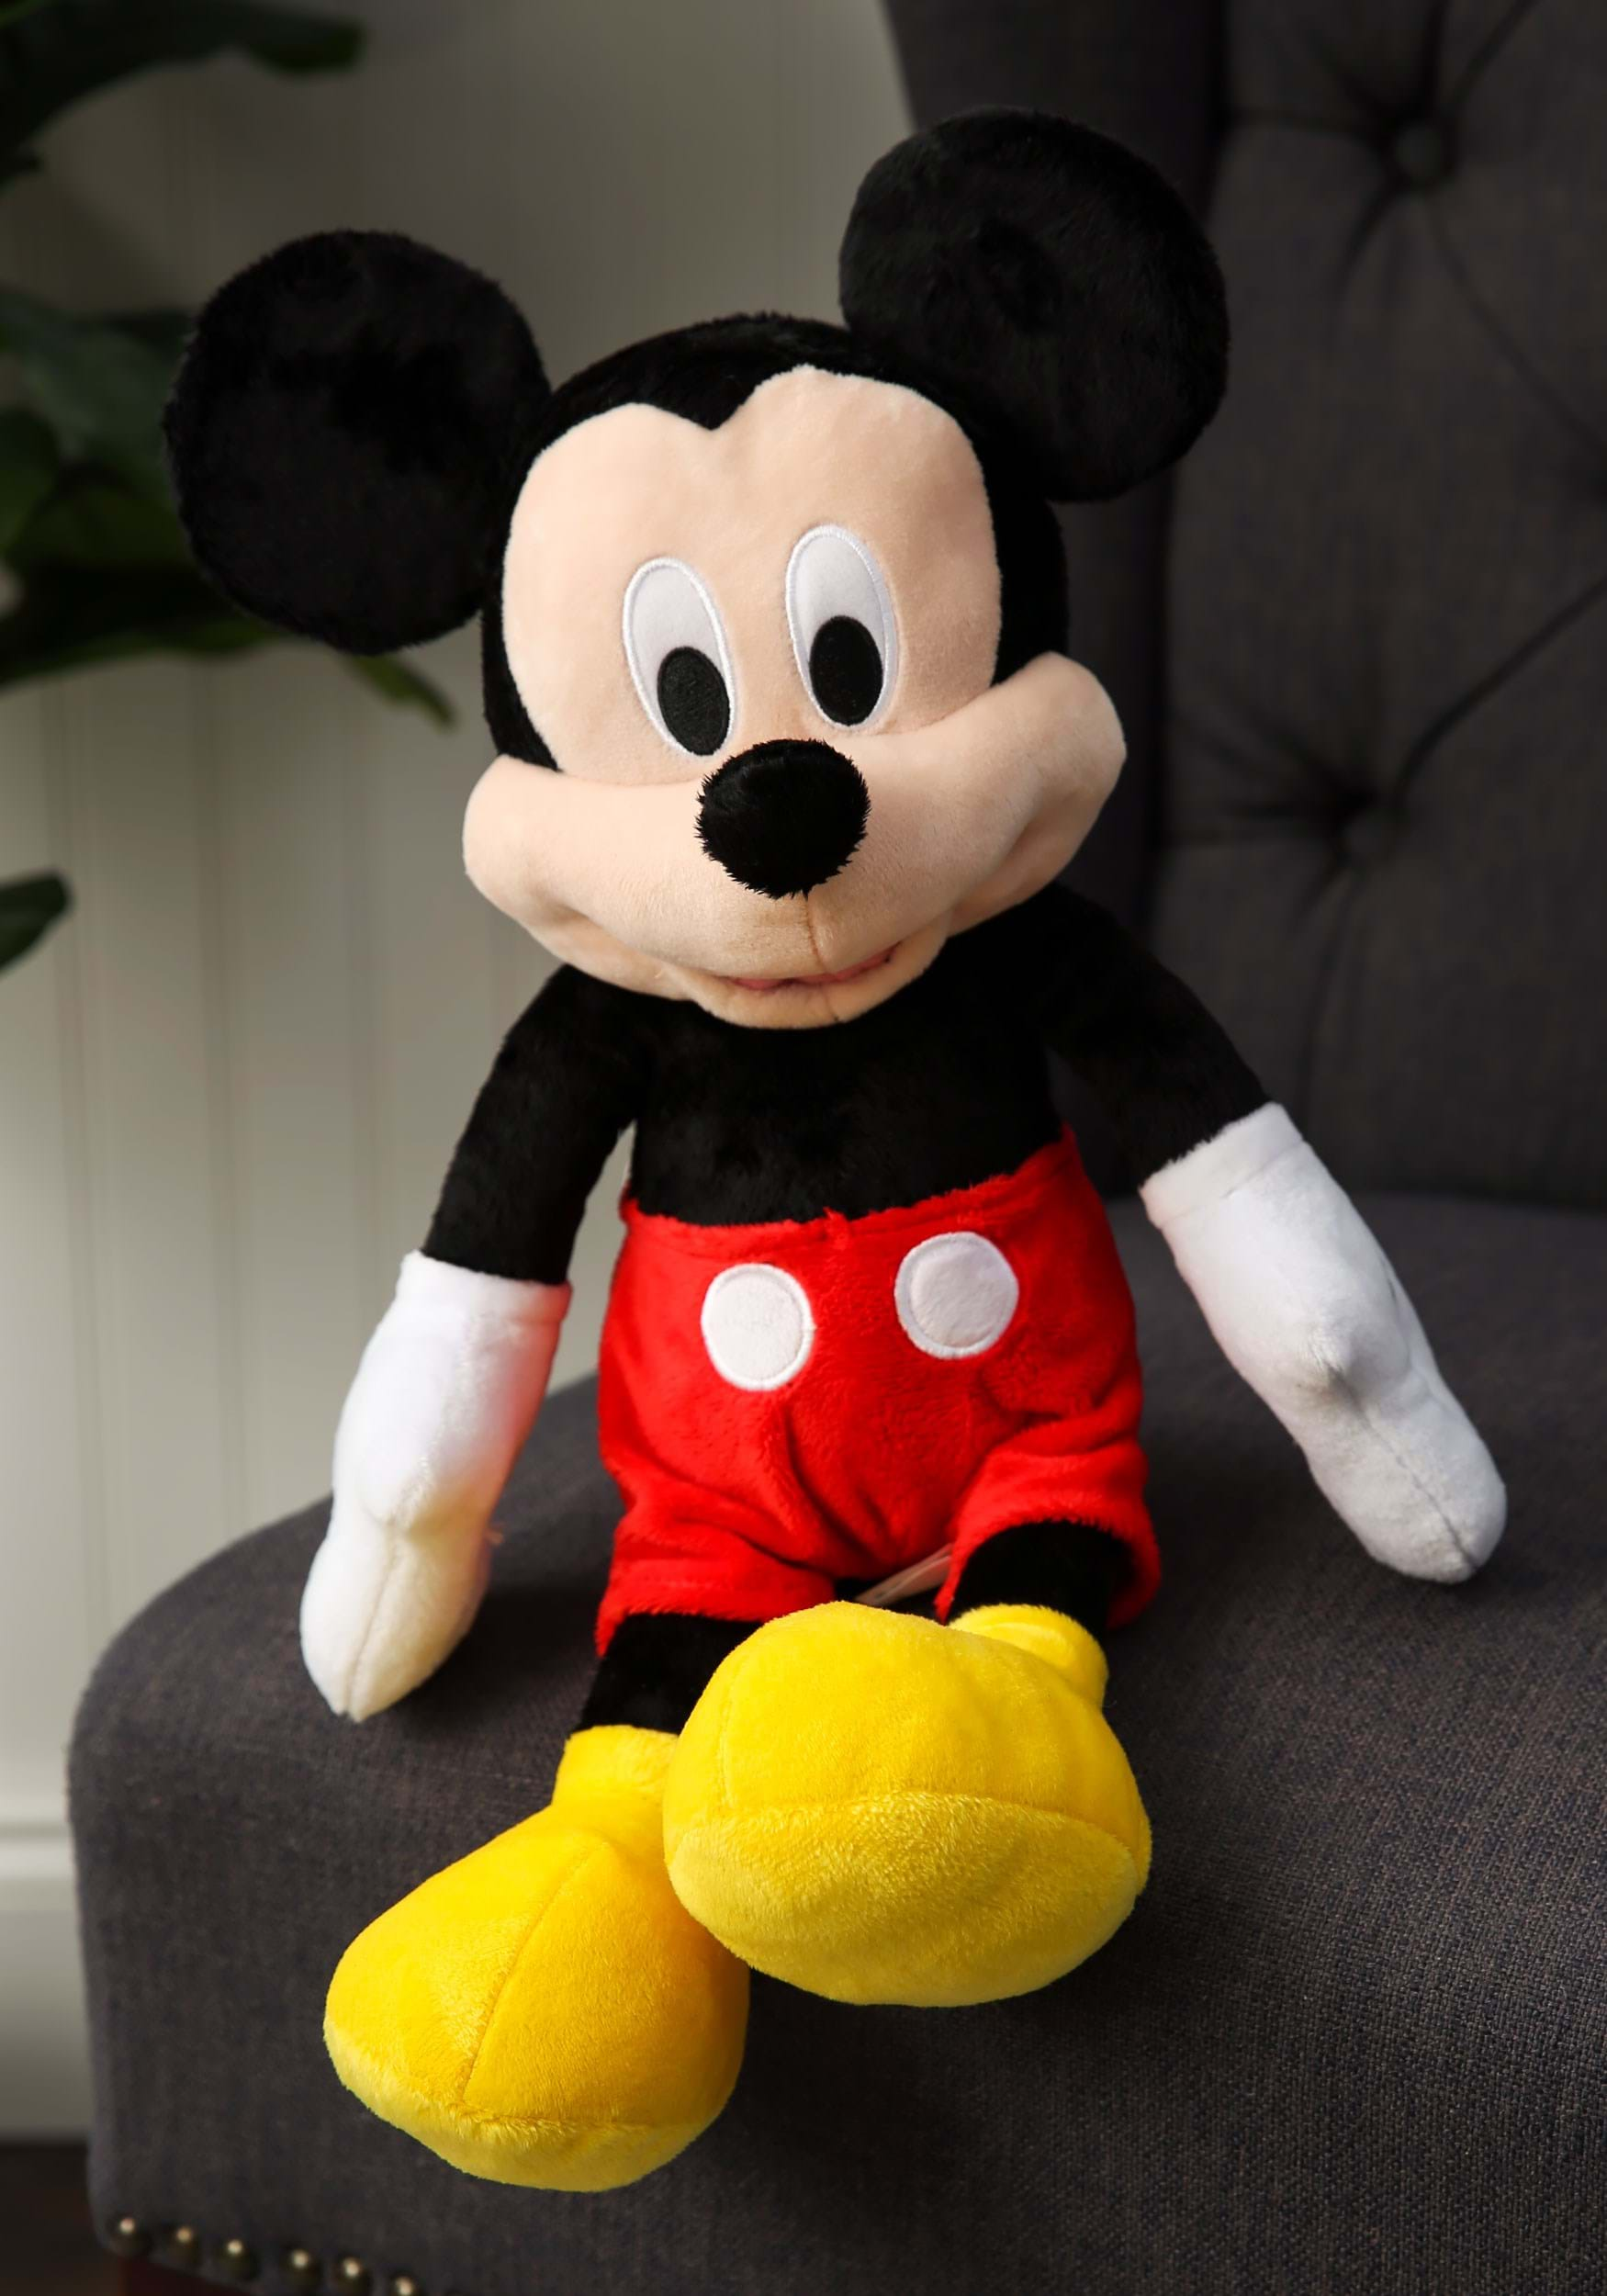 18 inch Mickey Mouse Stuffed Toy